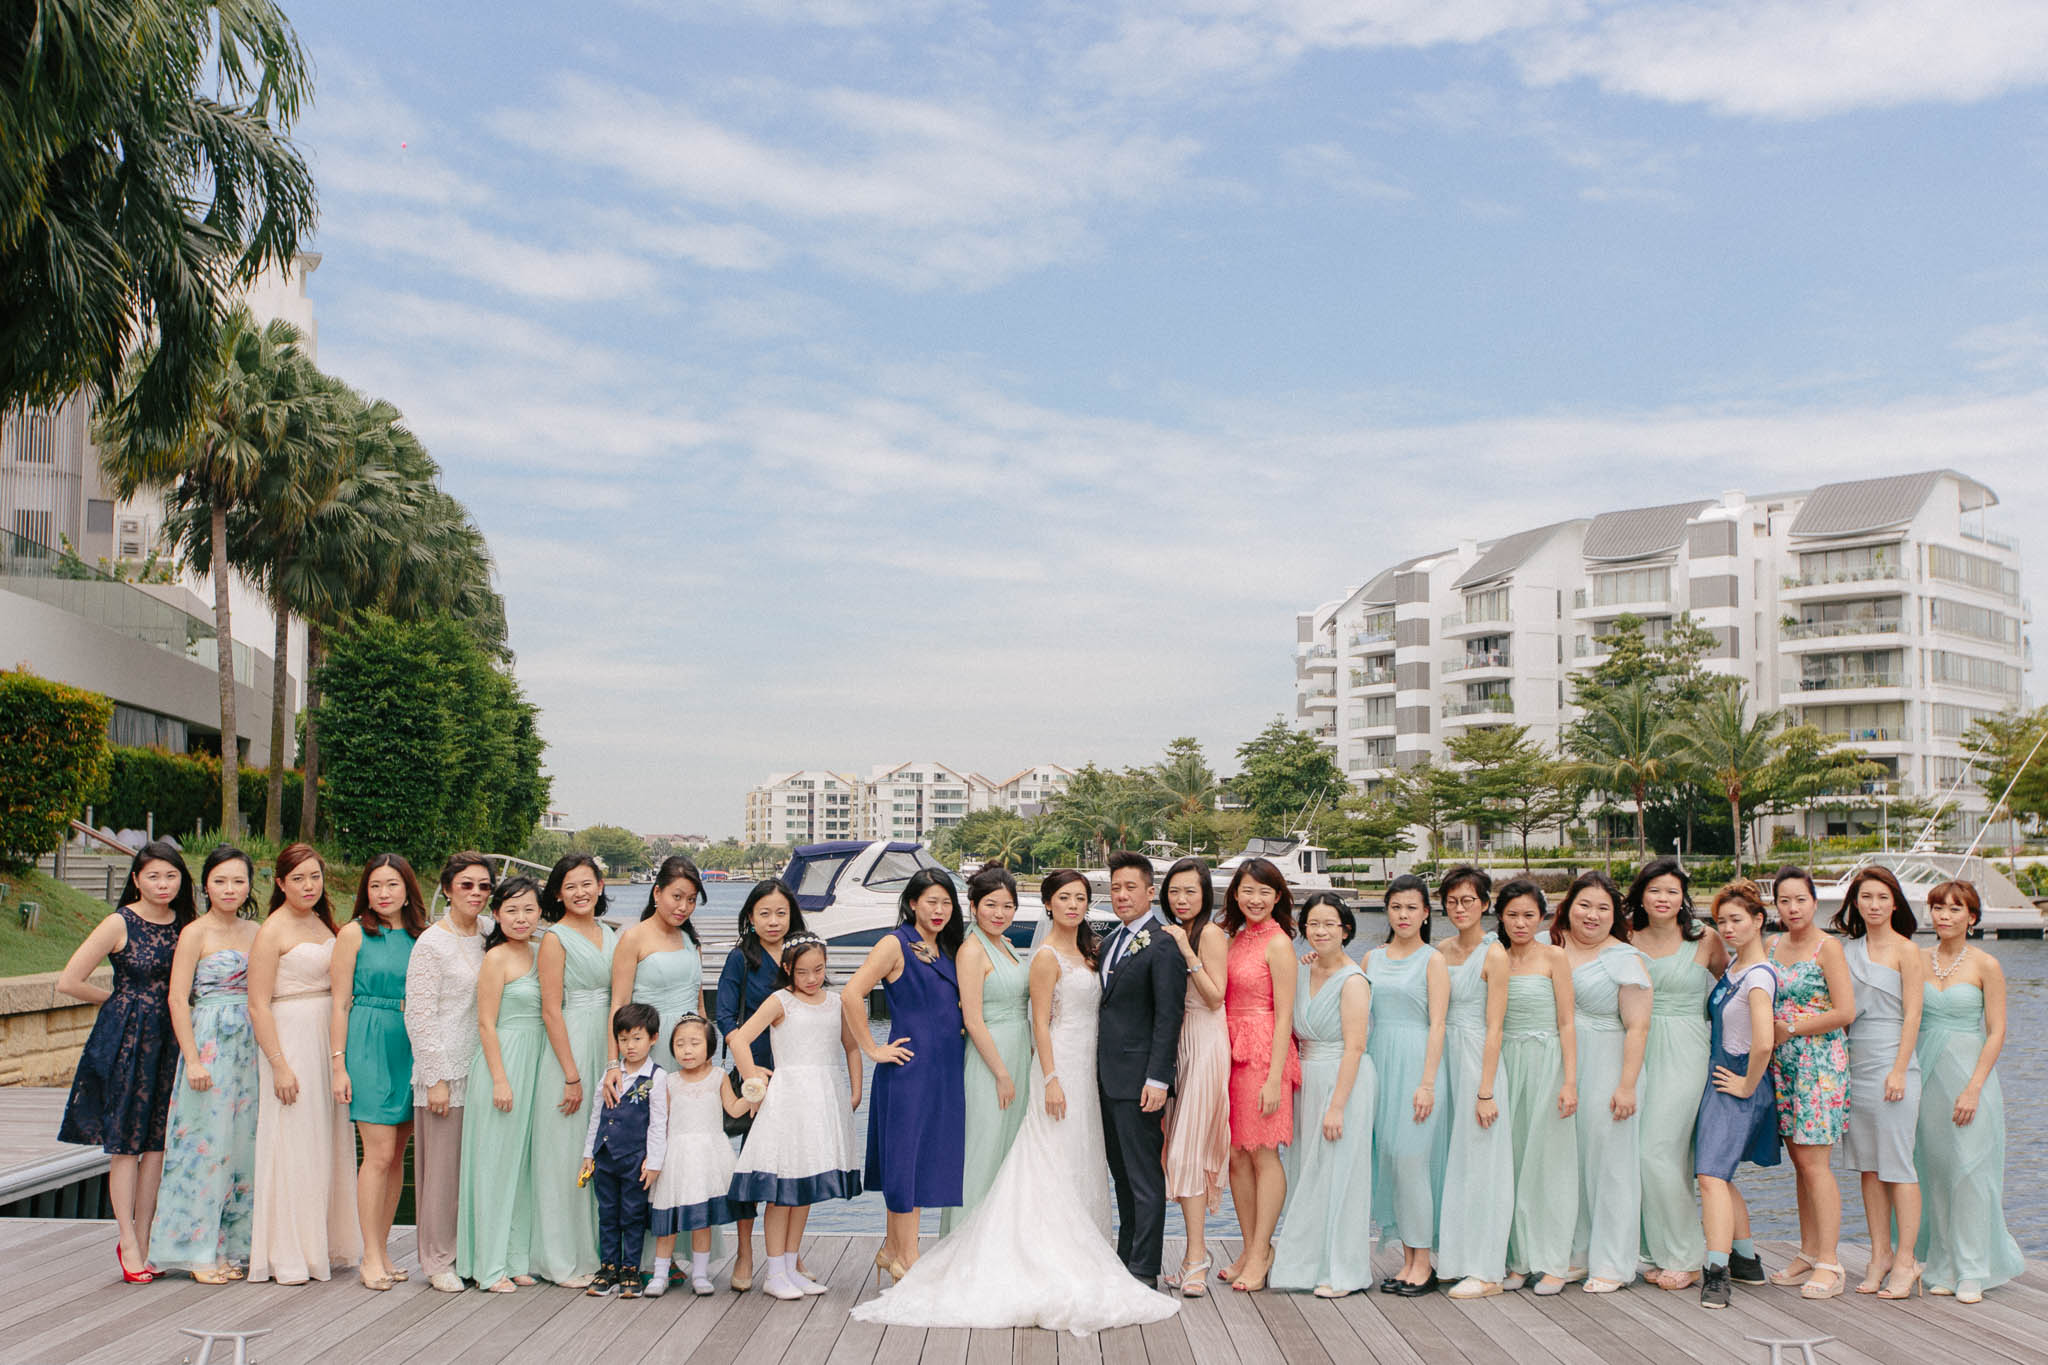 singapore-wedding-photographer-we-made-these-2016-selects-101.jpg